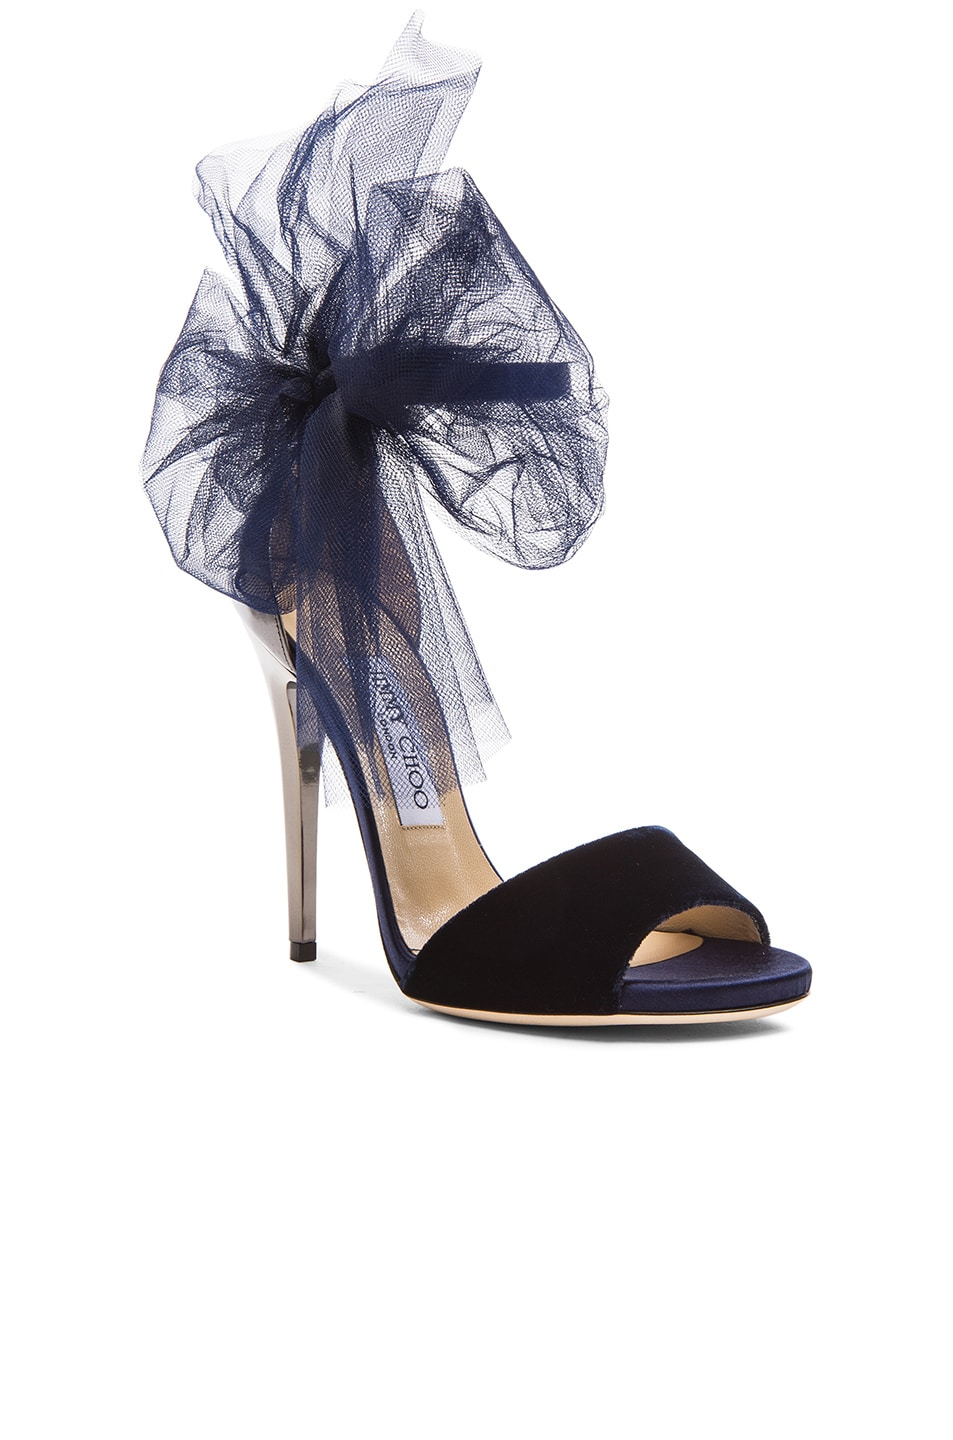 Image 2 of Jimmy Choo Lilyth Satin and Velvet Heels in Anthracite & Navy